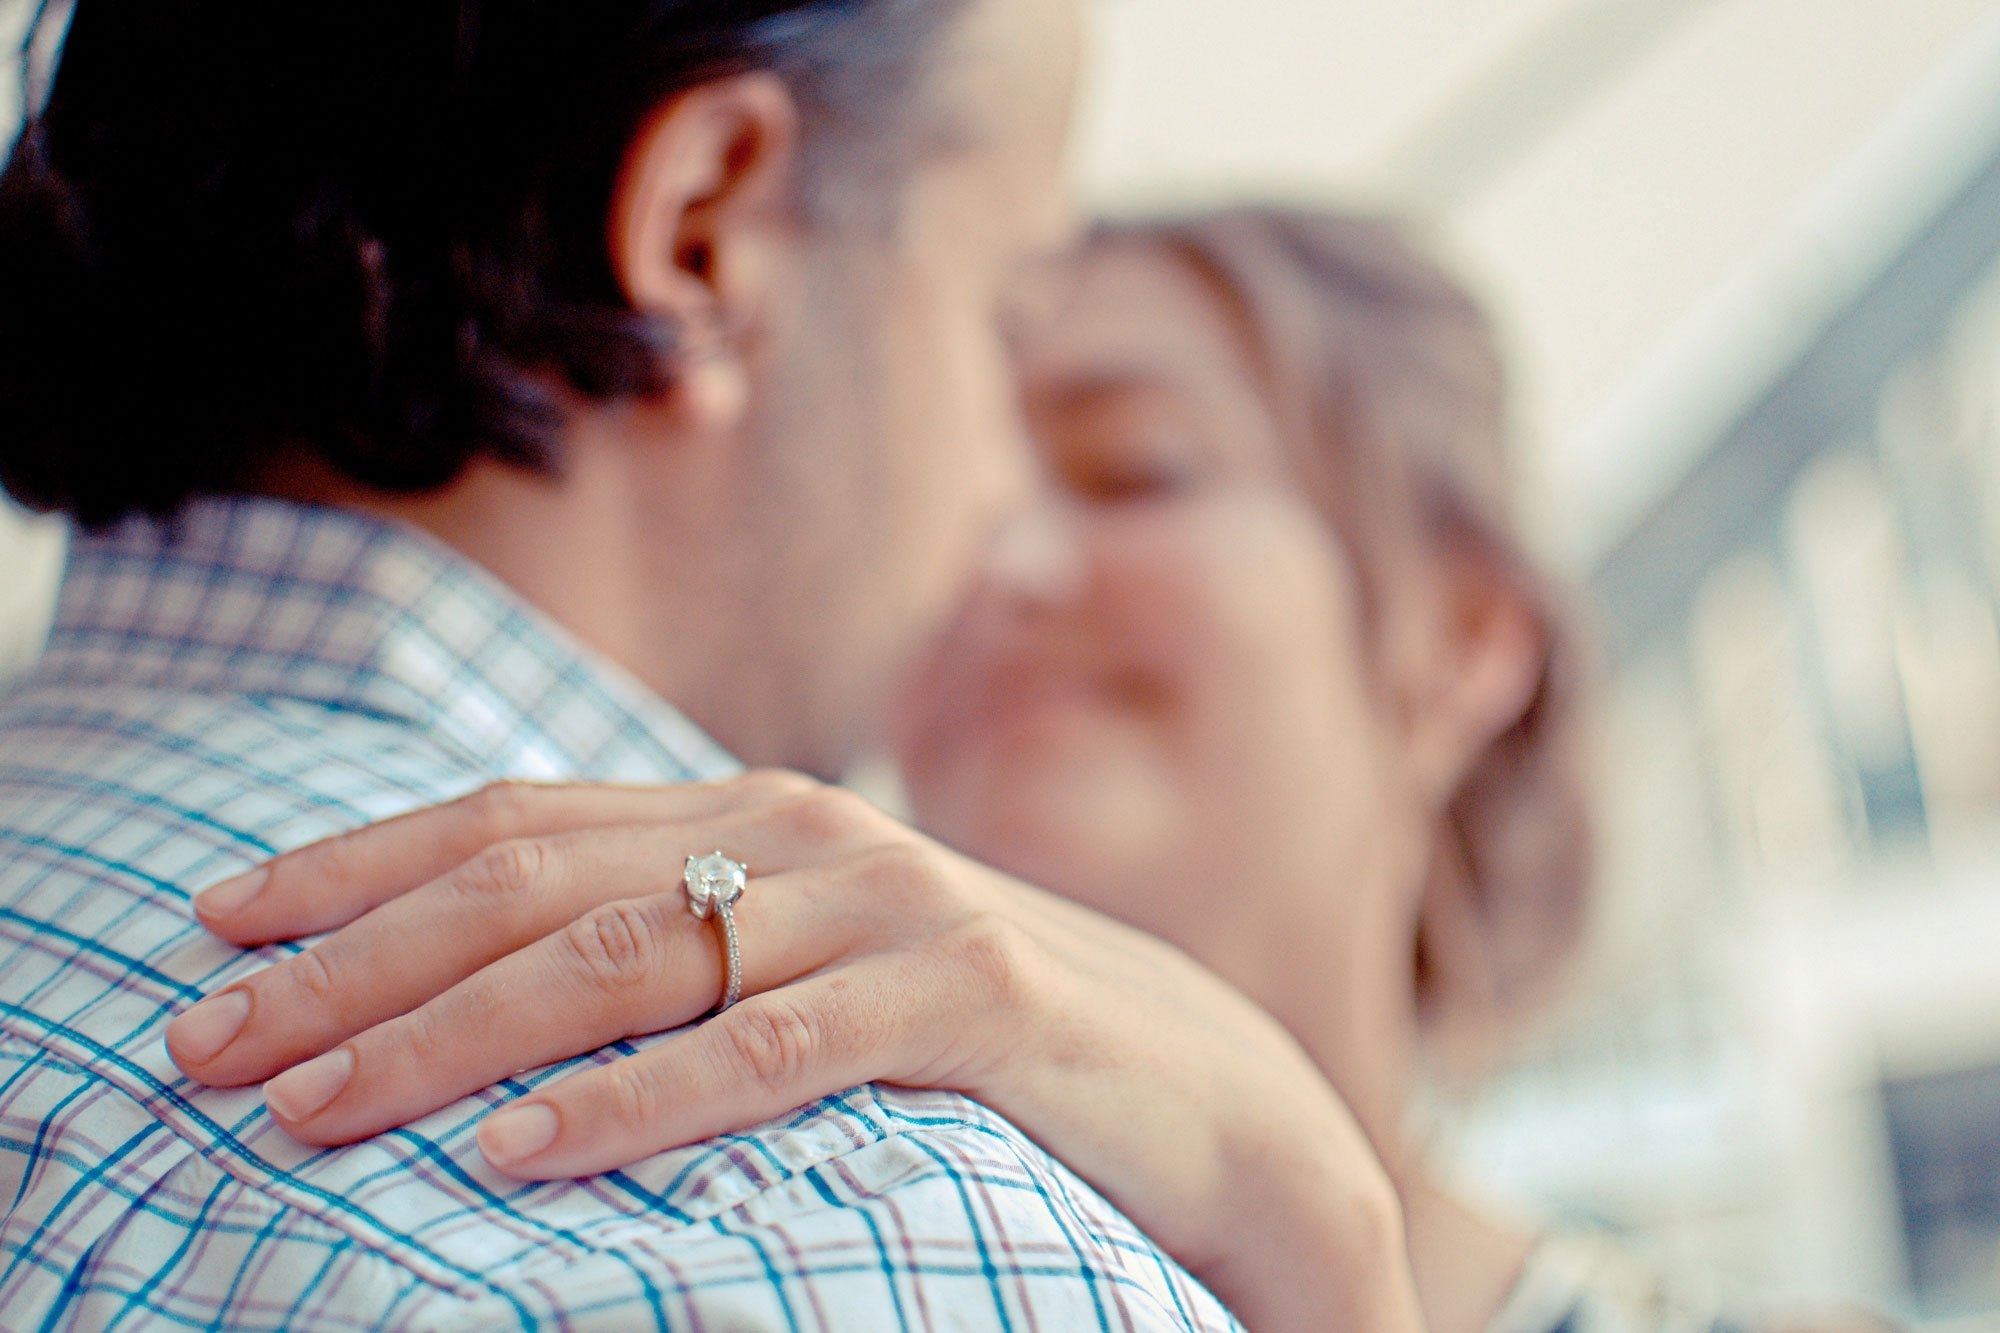 wedding ring on the hand of a couple embracing